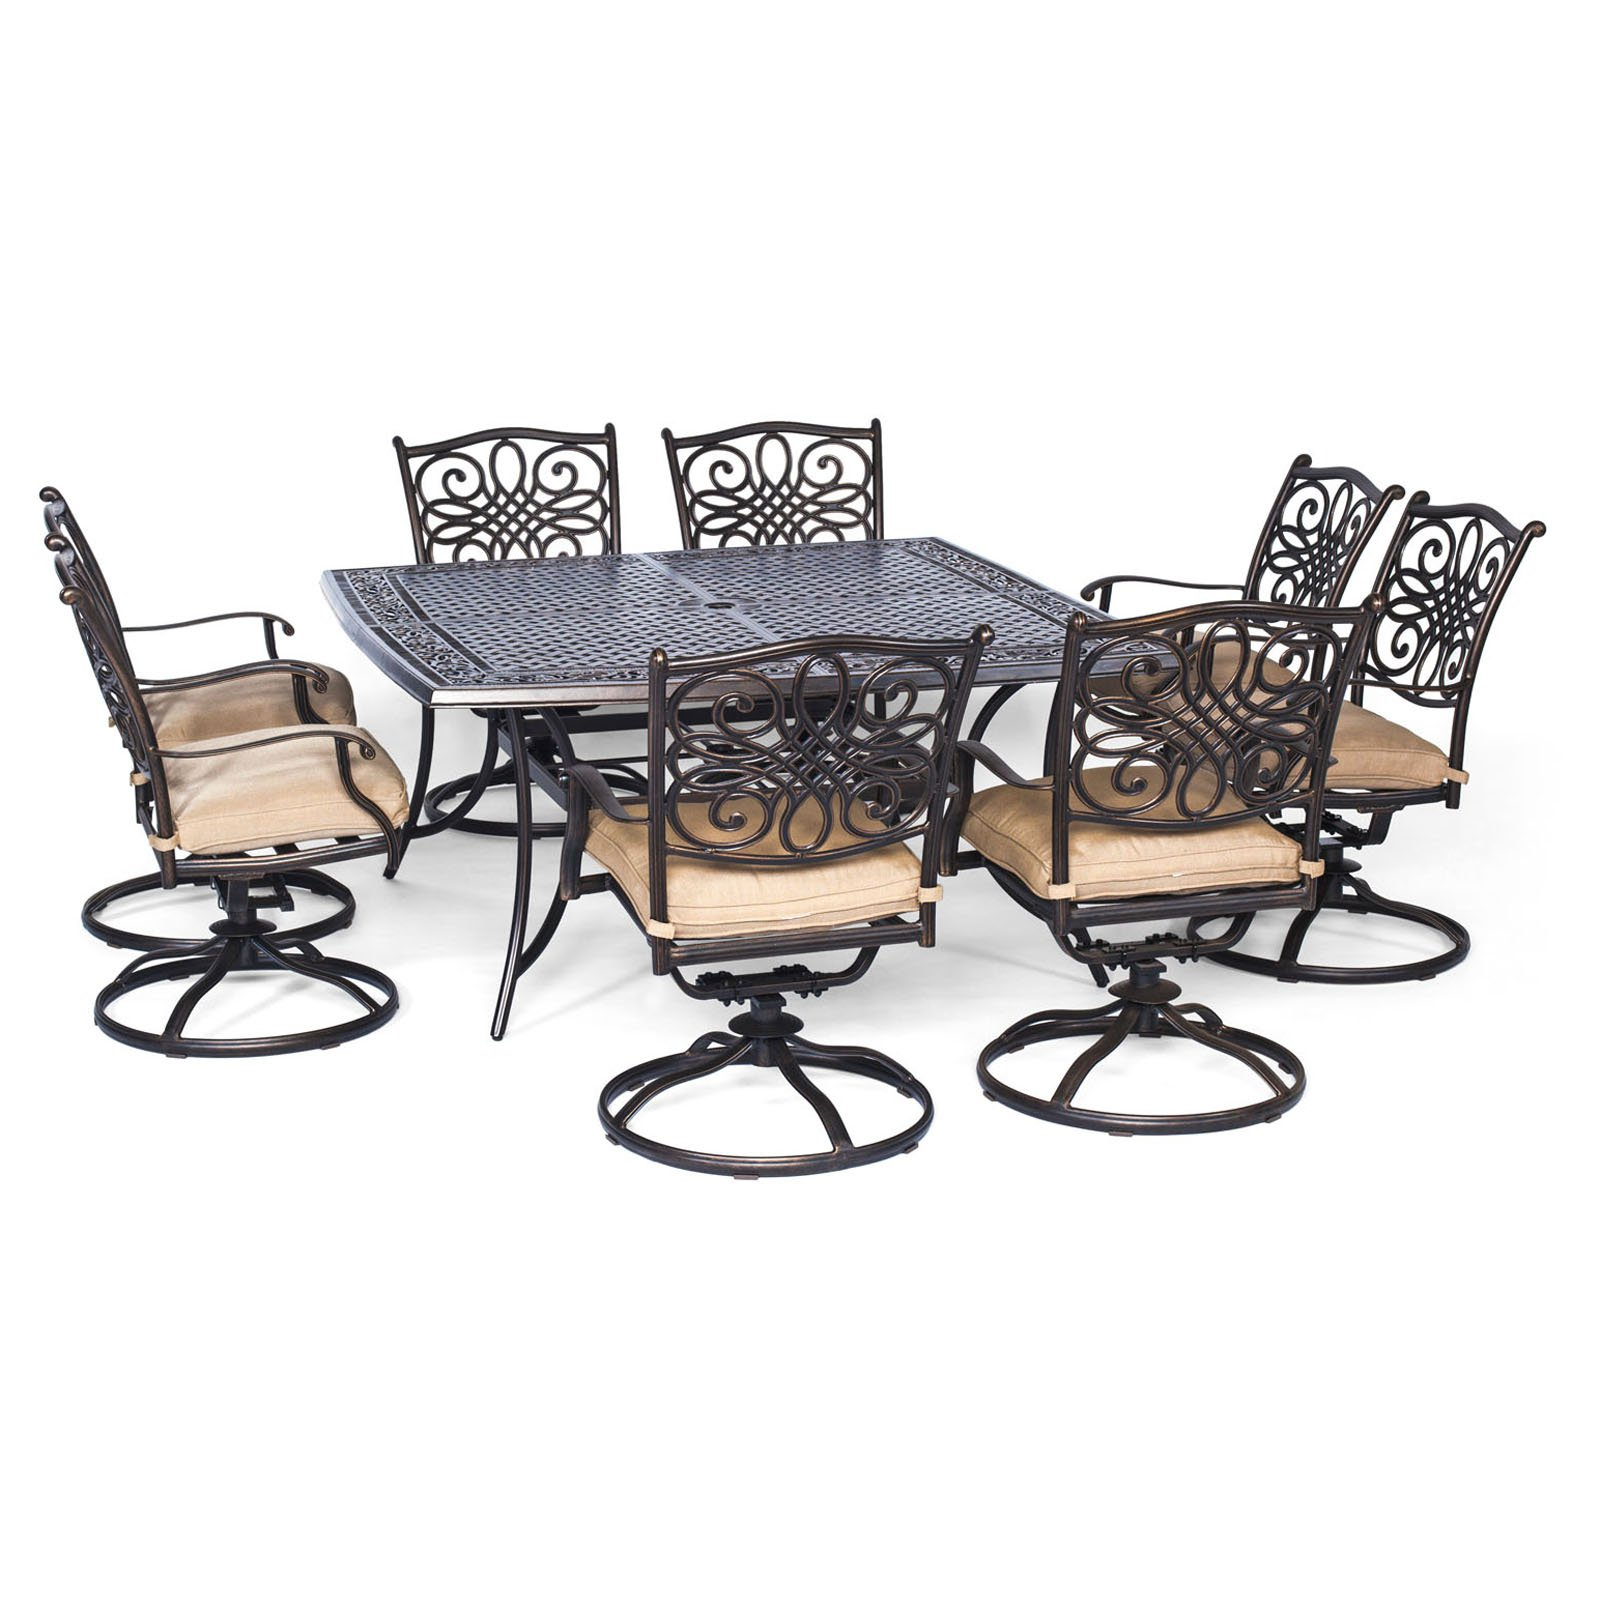 Hanover Outdoor Traditions 9-Piece Dining Set with Large Square Table and 8 Swivel Rockers, Natural Oat/Bronze